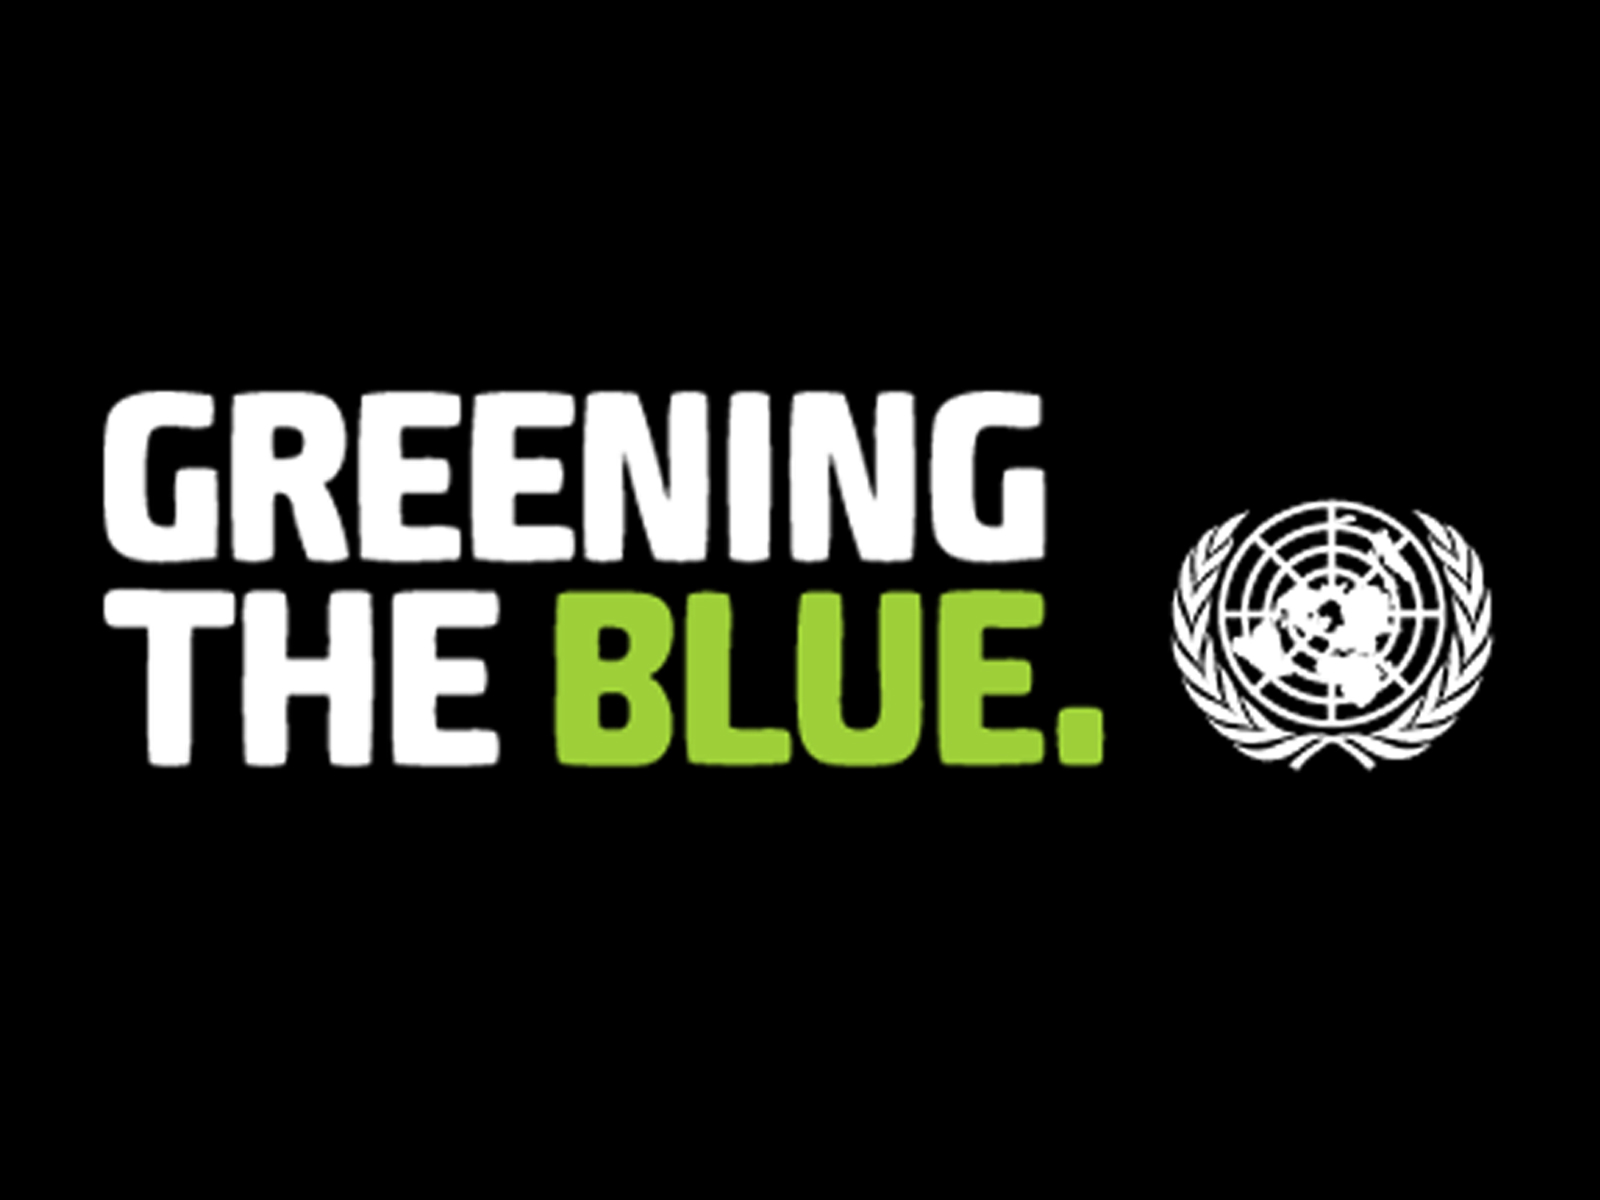 Greening the Blue Computer Wallpapers 1600 x 1200 - Simple black centre